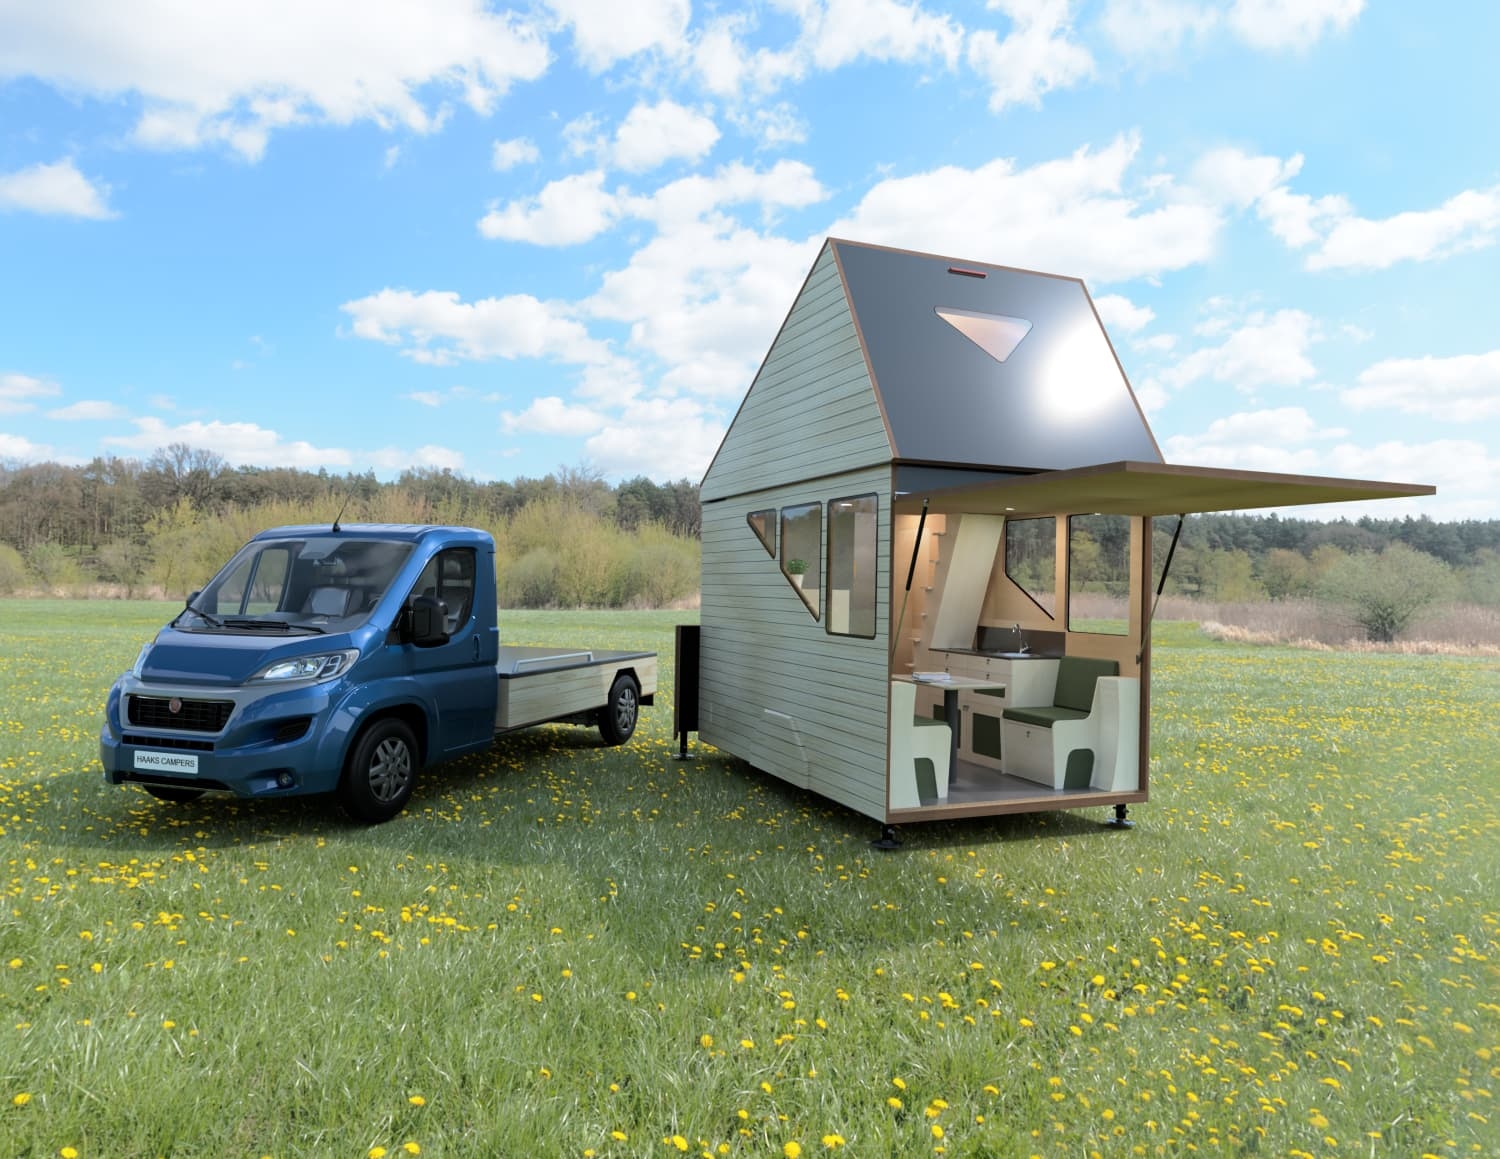 This Detachable Camper Expands into a Two-Story Tiny House